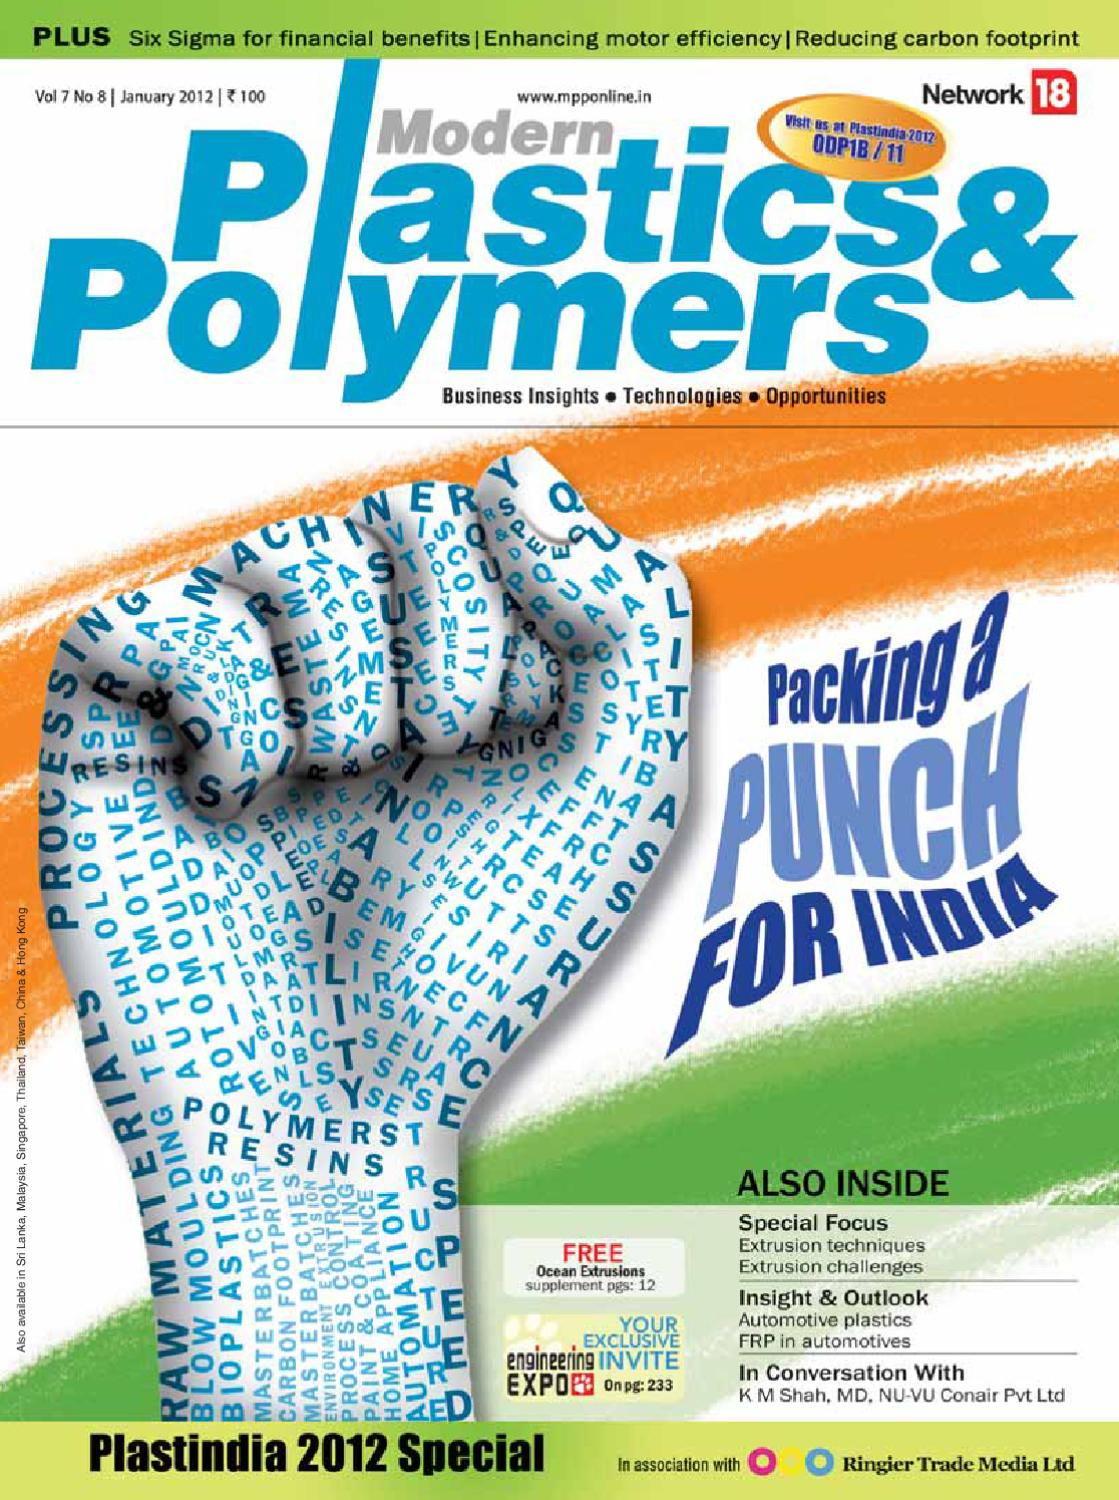 Modern Plastics Polymers January 2012 By Infomedia18 Issuu 707 X 584 Jpeg 37kb Model Railroad Electronic Circuit Lists